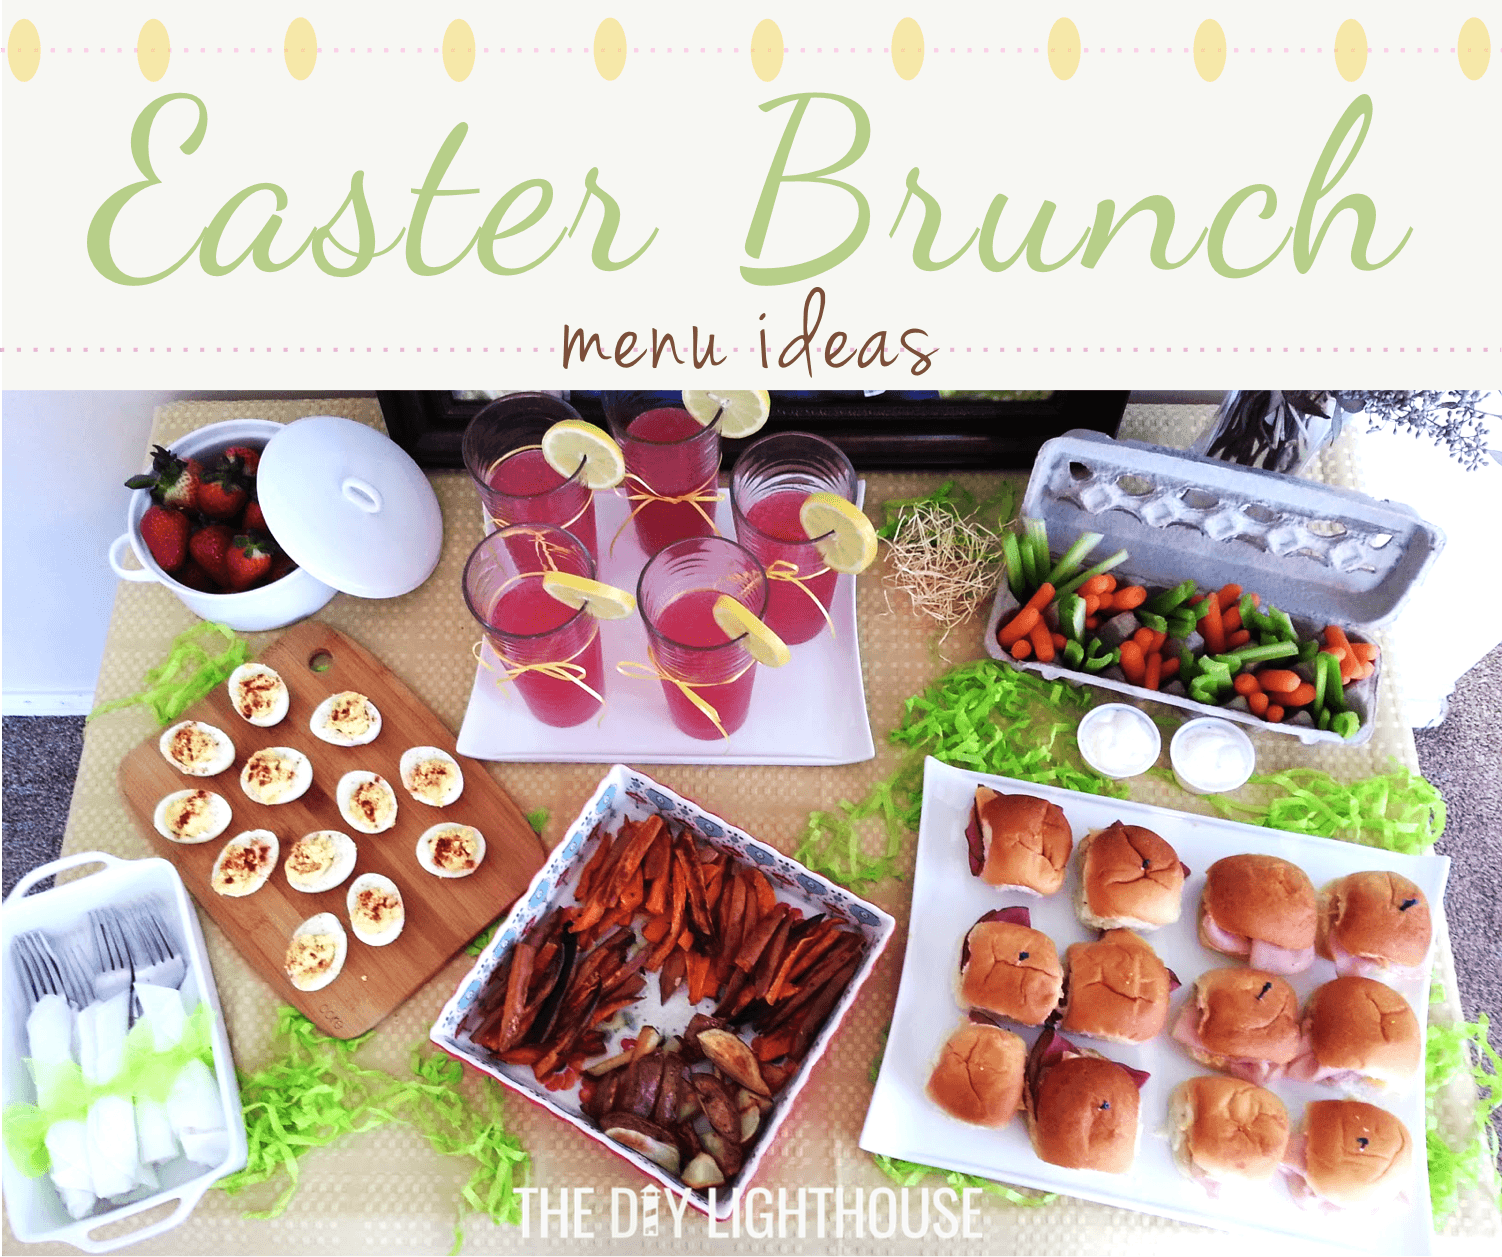 Easter brunch menu ideas the diy lighthouse for Best brunch menu